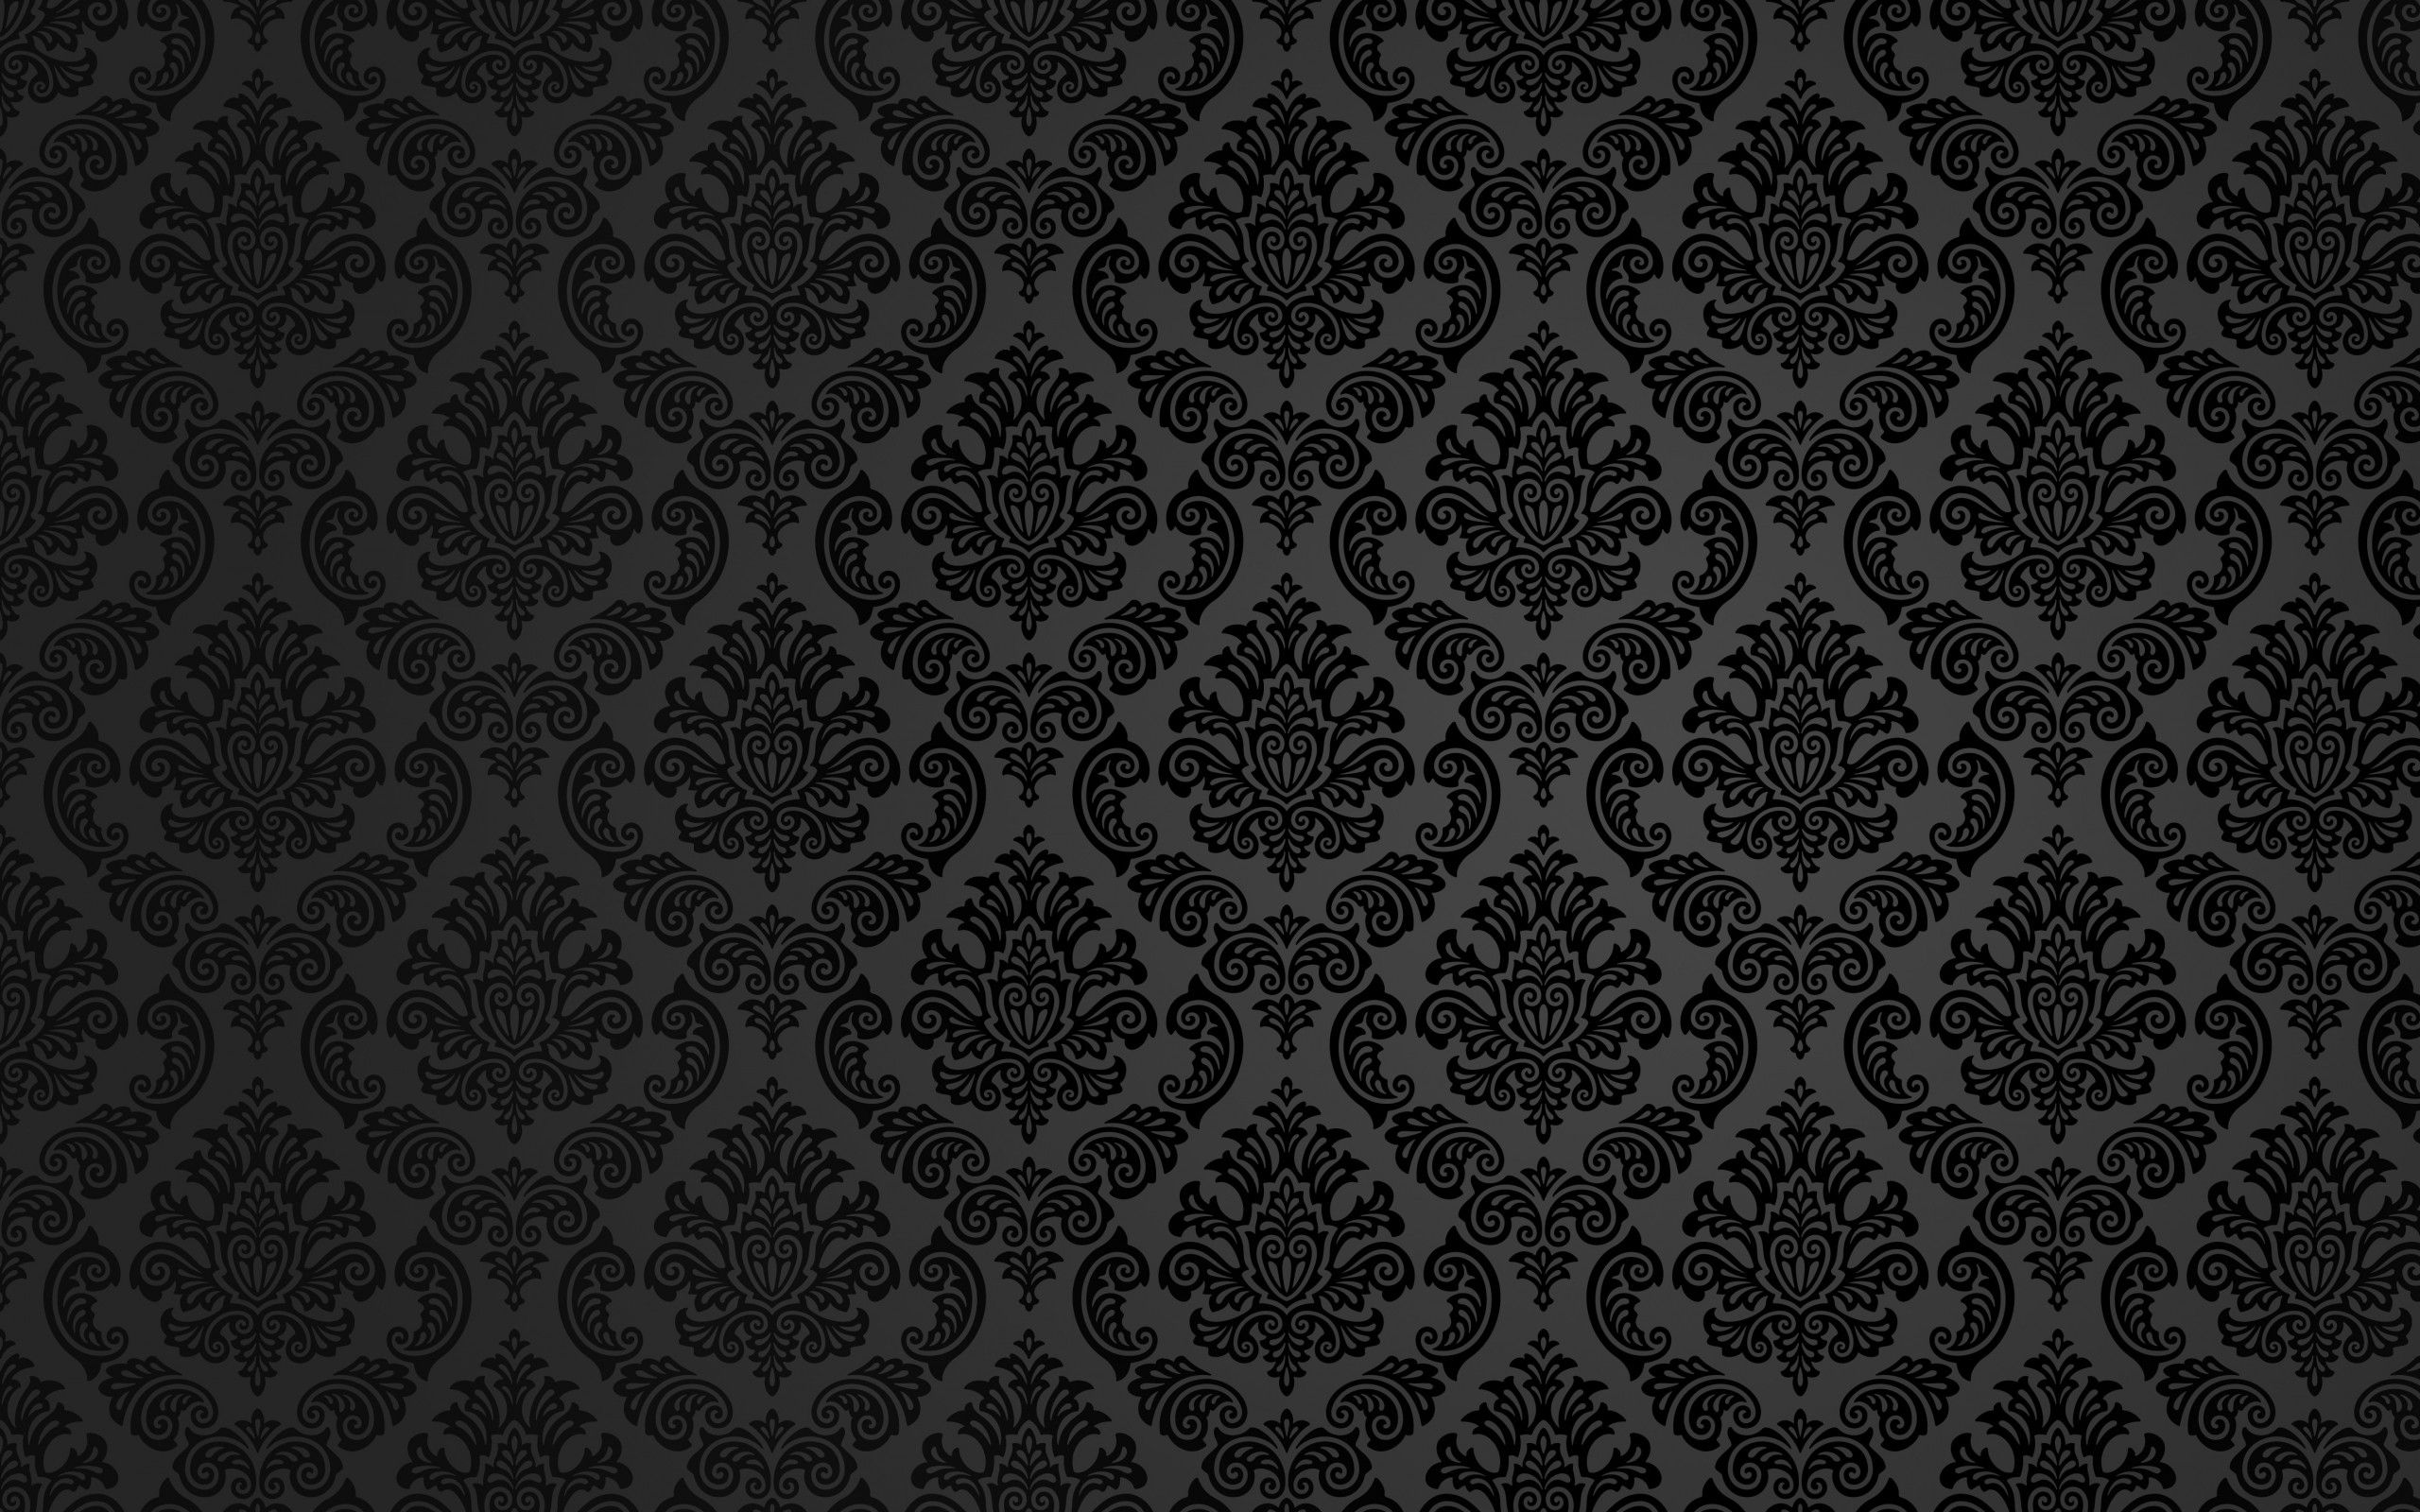 Transform Your Space With Stylish Damask Wallpaper